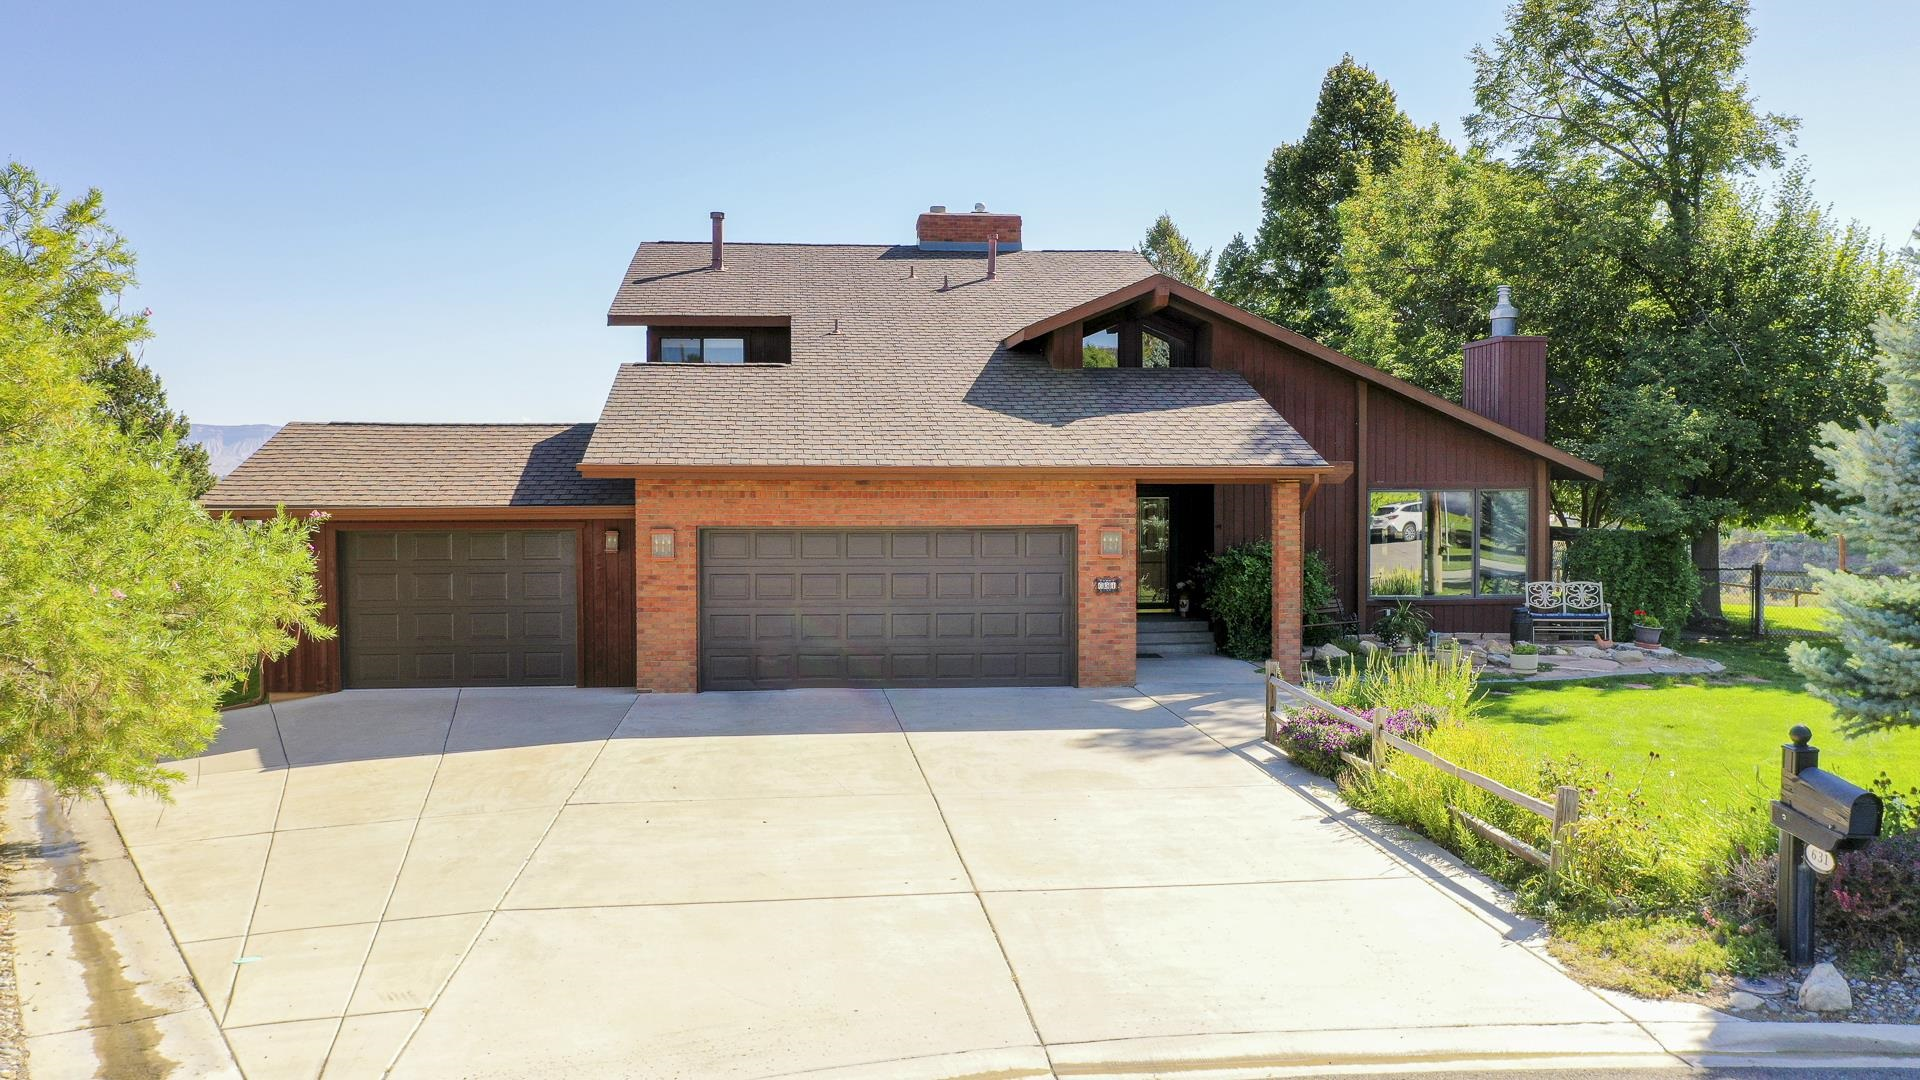 This really is ONE OF A KIND!!  Situated on just over 2 acres, the expansive views of the Bookcliffs, Mt Garfield, Grand Mesa & the valley floor from virtually every window is the focal point of this amazing home. This home has so many things to offer starting w/ 2 living areas + loft, formal dining & breakfast nook, 5 beds, 4 baths, 3 car garage & just over 4000 sq ft. Enjoy time in the kitchen which is light, bright & has plenty of counter space & prep area as well as an amazing breakfast nook to spend a quiet morning enjoying the sunrise and views! Outside you will find spacious decks that expand your entertaining area & are great for morning coffee or evening wine! Did I mention the golf green... Work on your short game right in your own backyard with the Grand Valley as your backdrop! Quiet cul-de-sac location and much more - This could be our new HOME!!